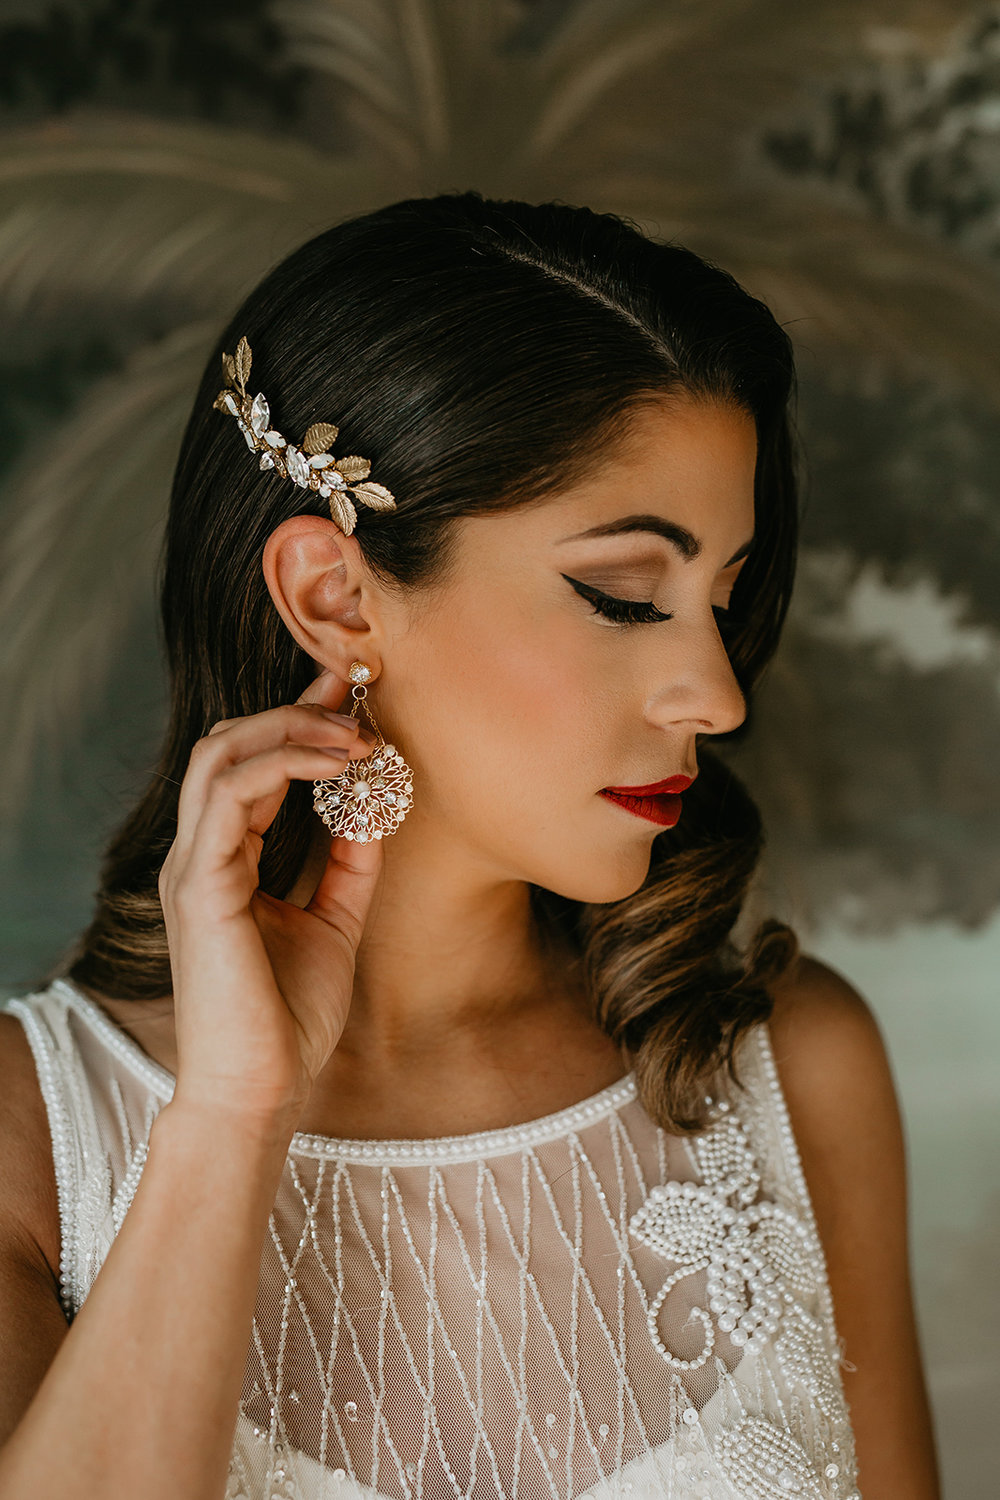 Calgary bride hair style jewelry gown